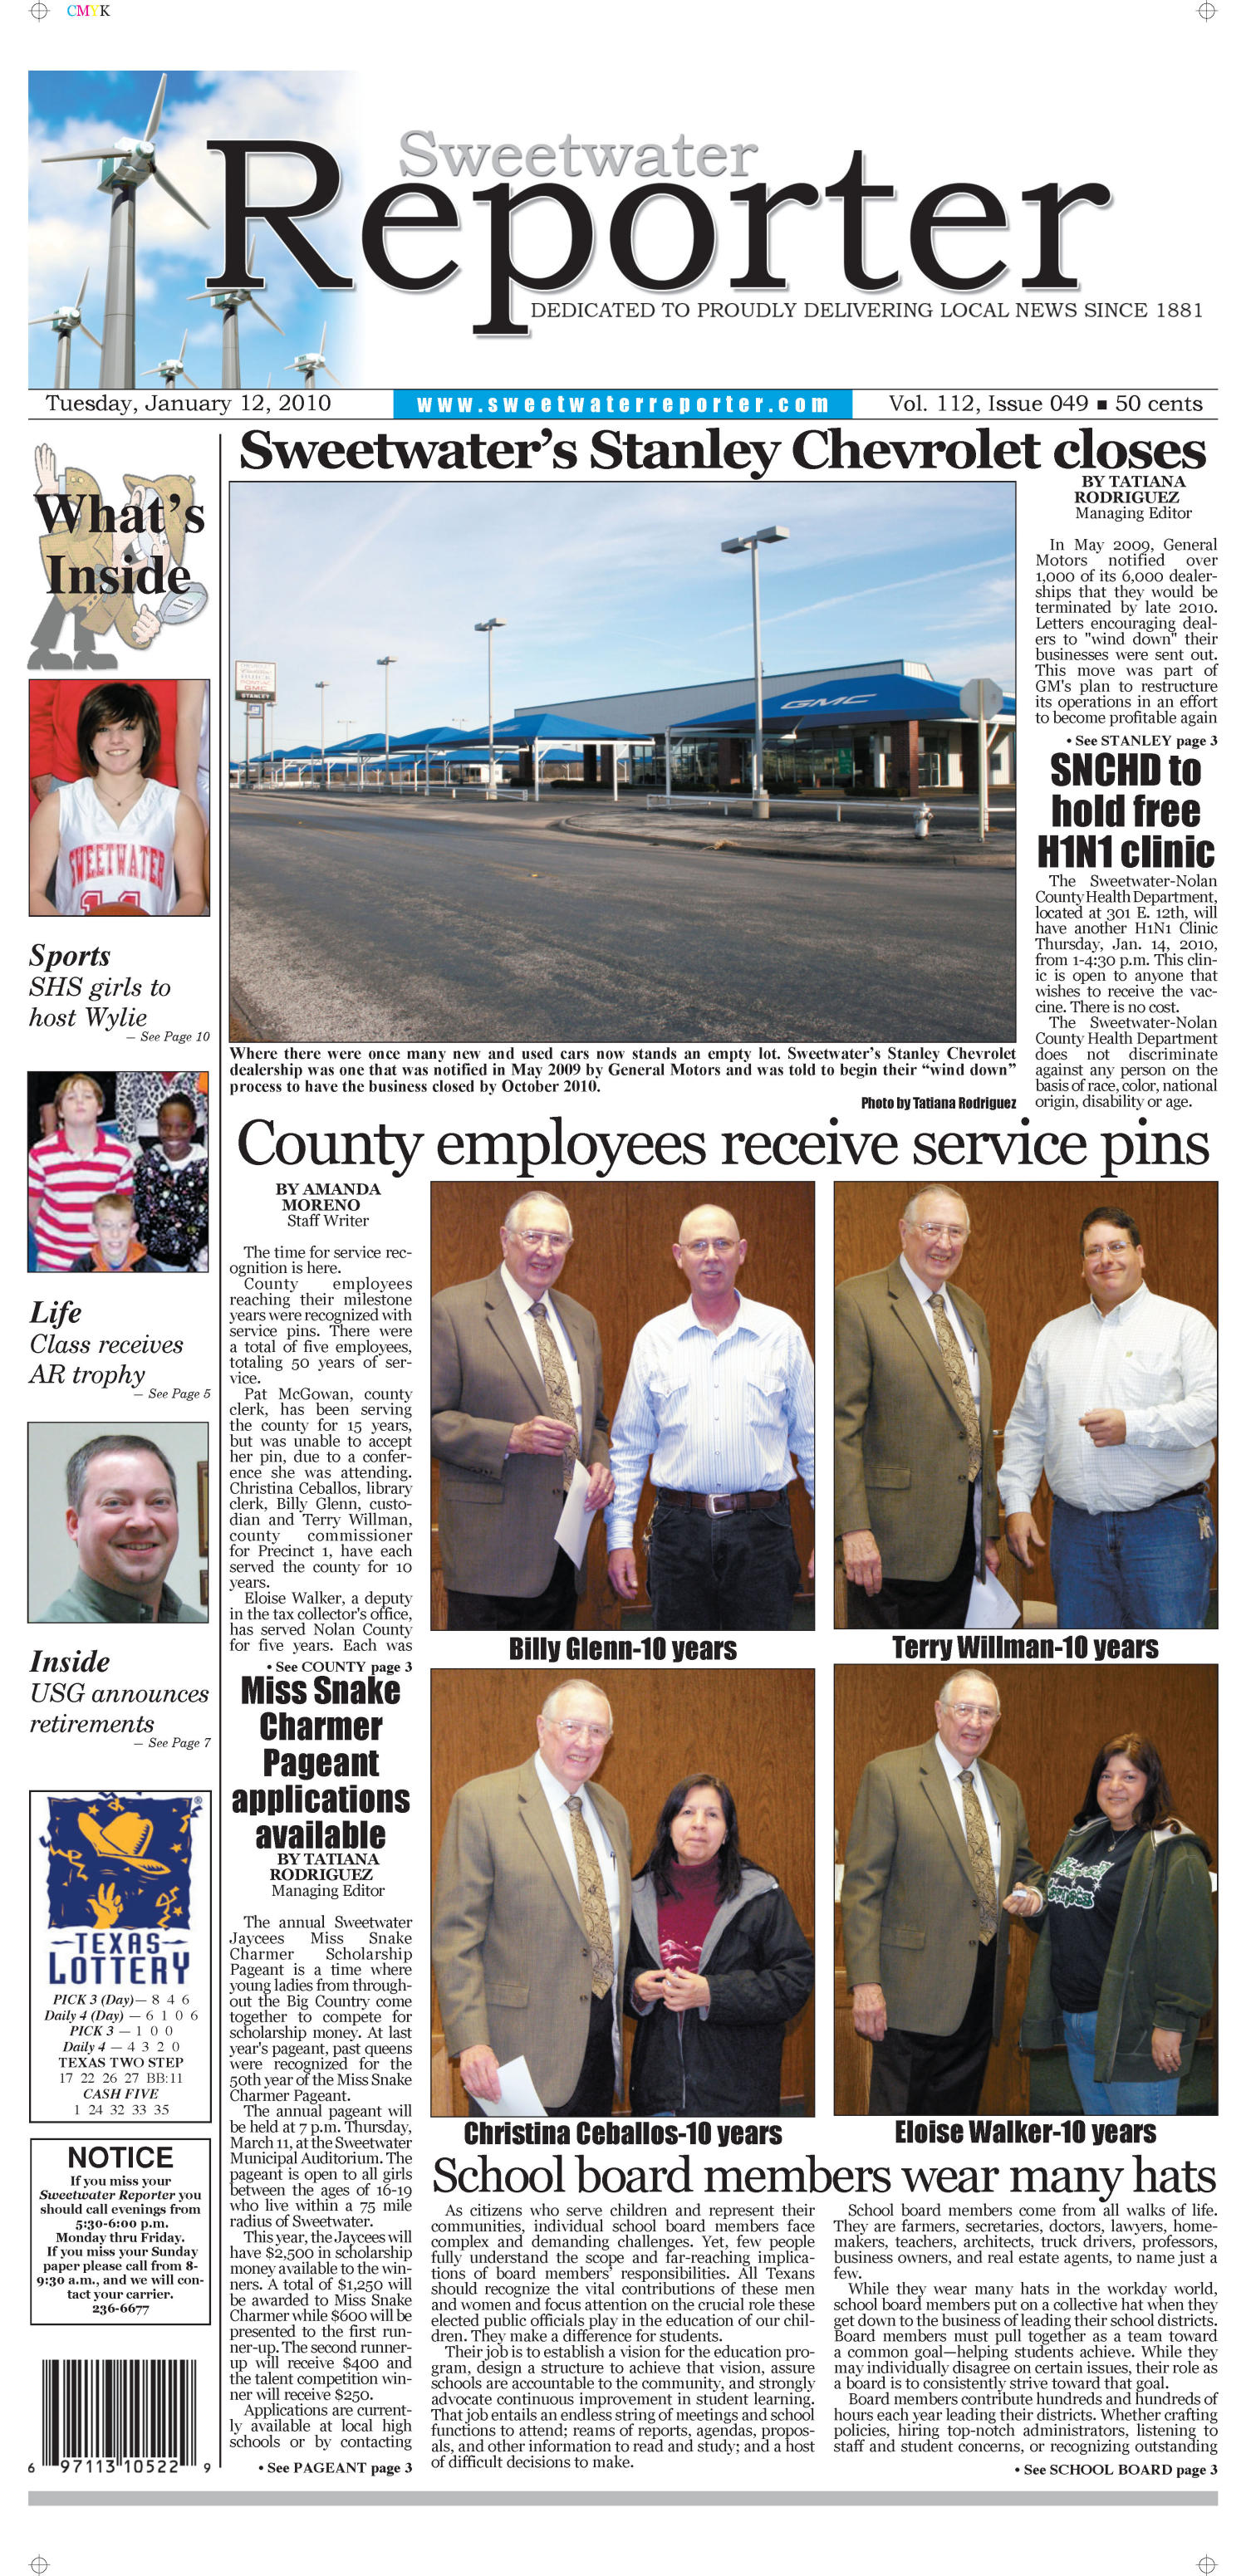 Sweetwater Reporter (Sweetwater, Tex.), Vol. 112, No. 049, Ed. 1 Tuesday, January 12, 2010                                                                                                      [Sequence #]: 1 of 10